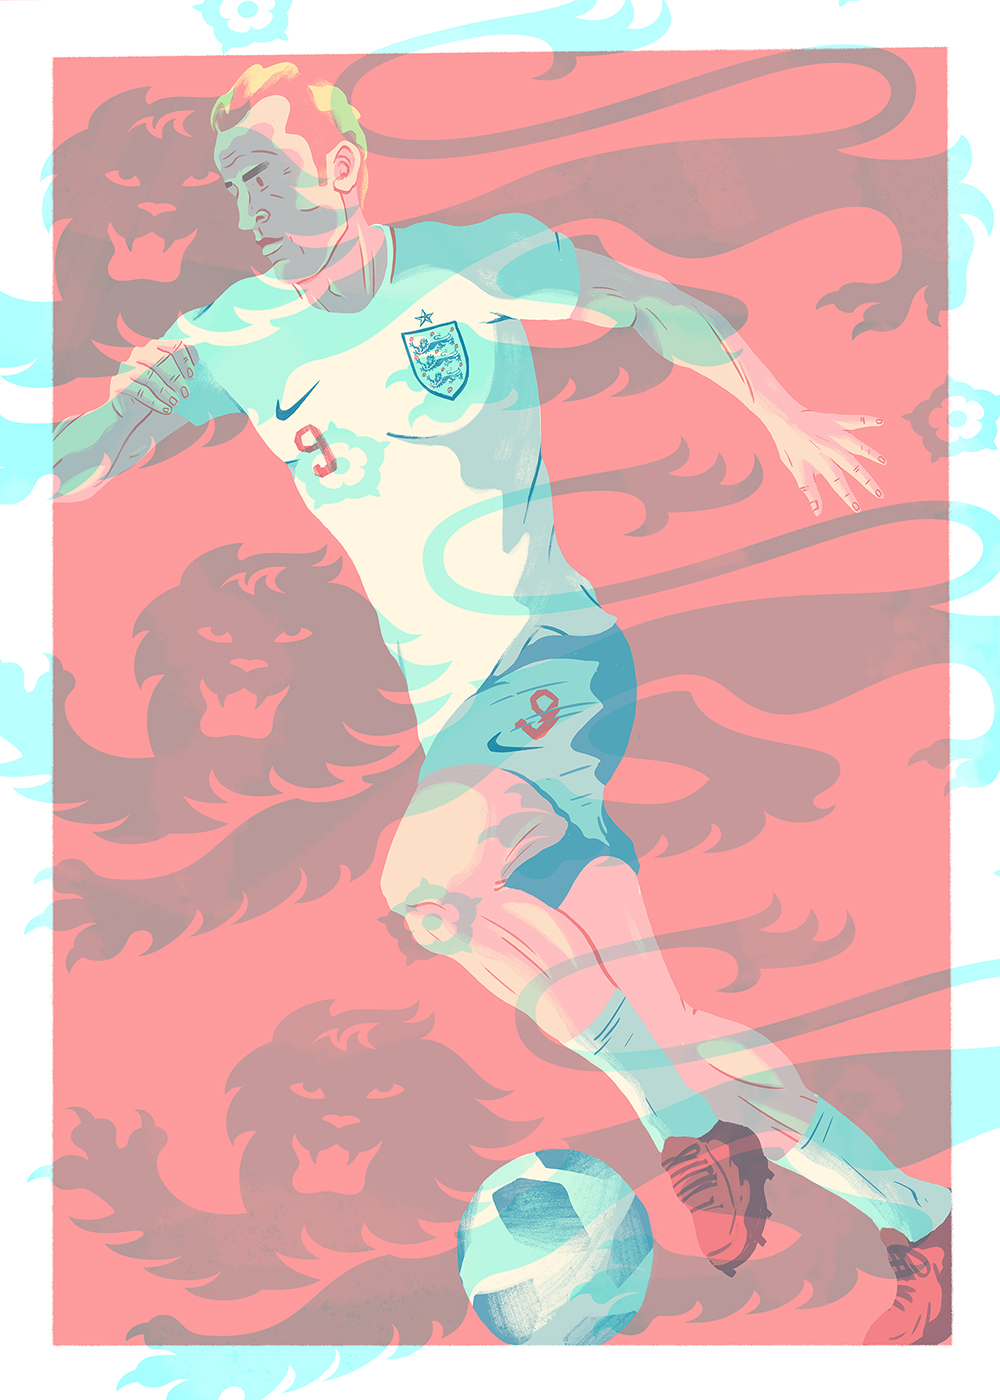 HarryKane-England-illustration.jpg